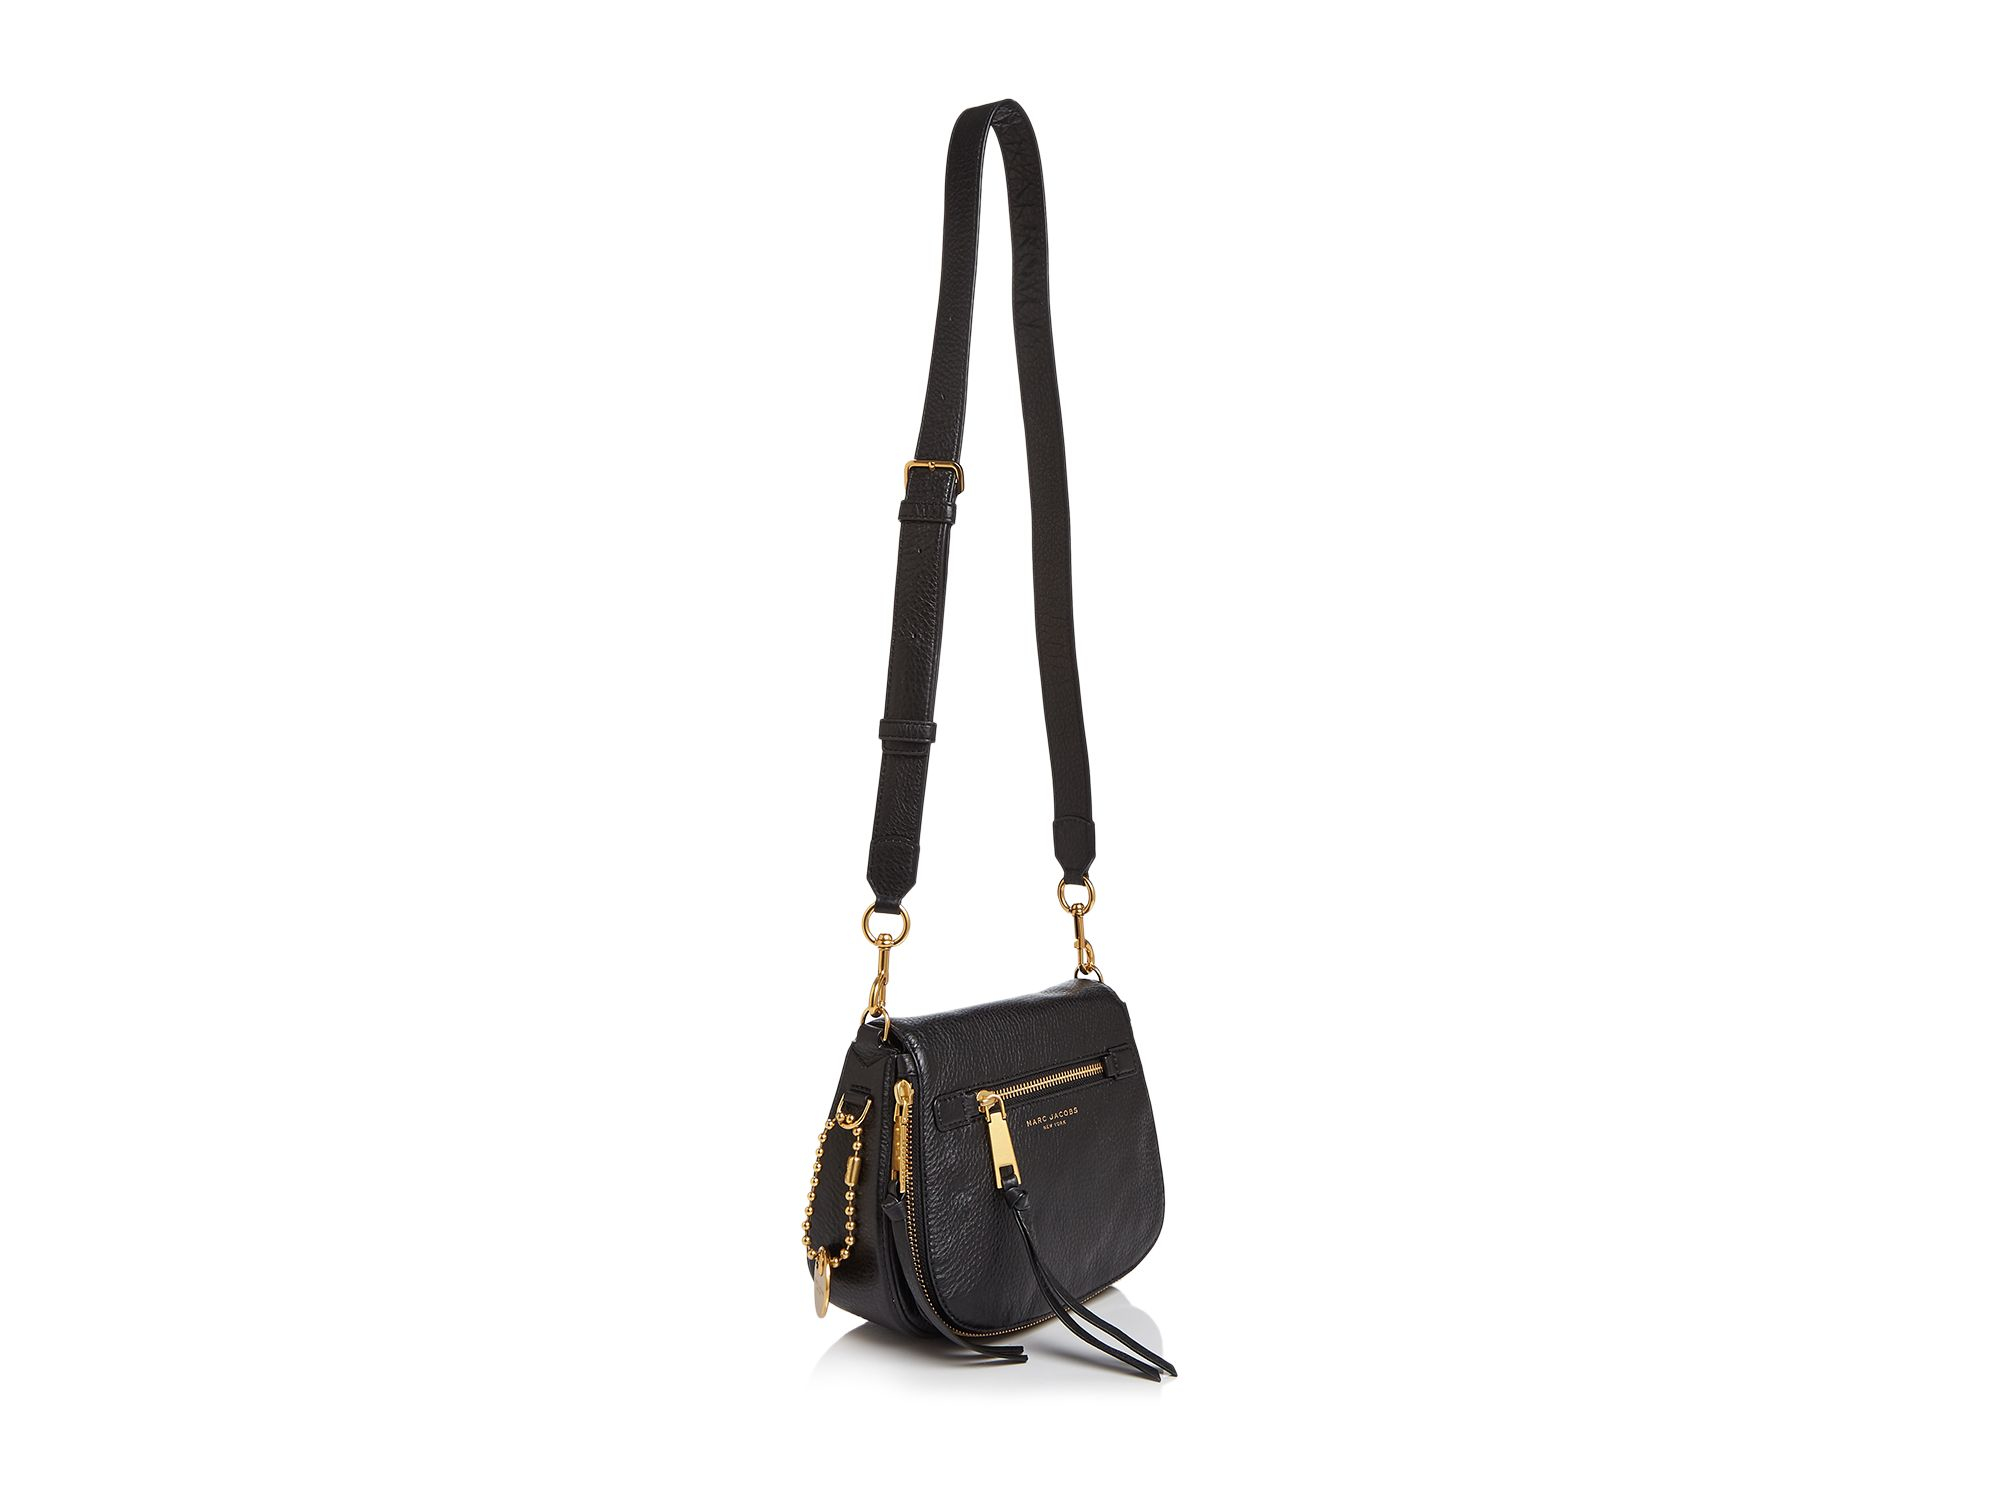 d466e0f00f71 Lyst - Marc Jacobs Recruit Small Saddle Bag in Natural